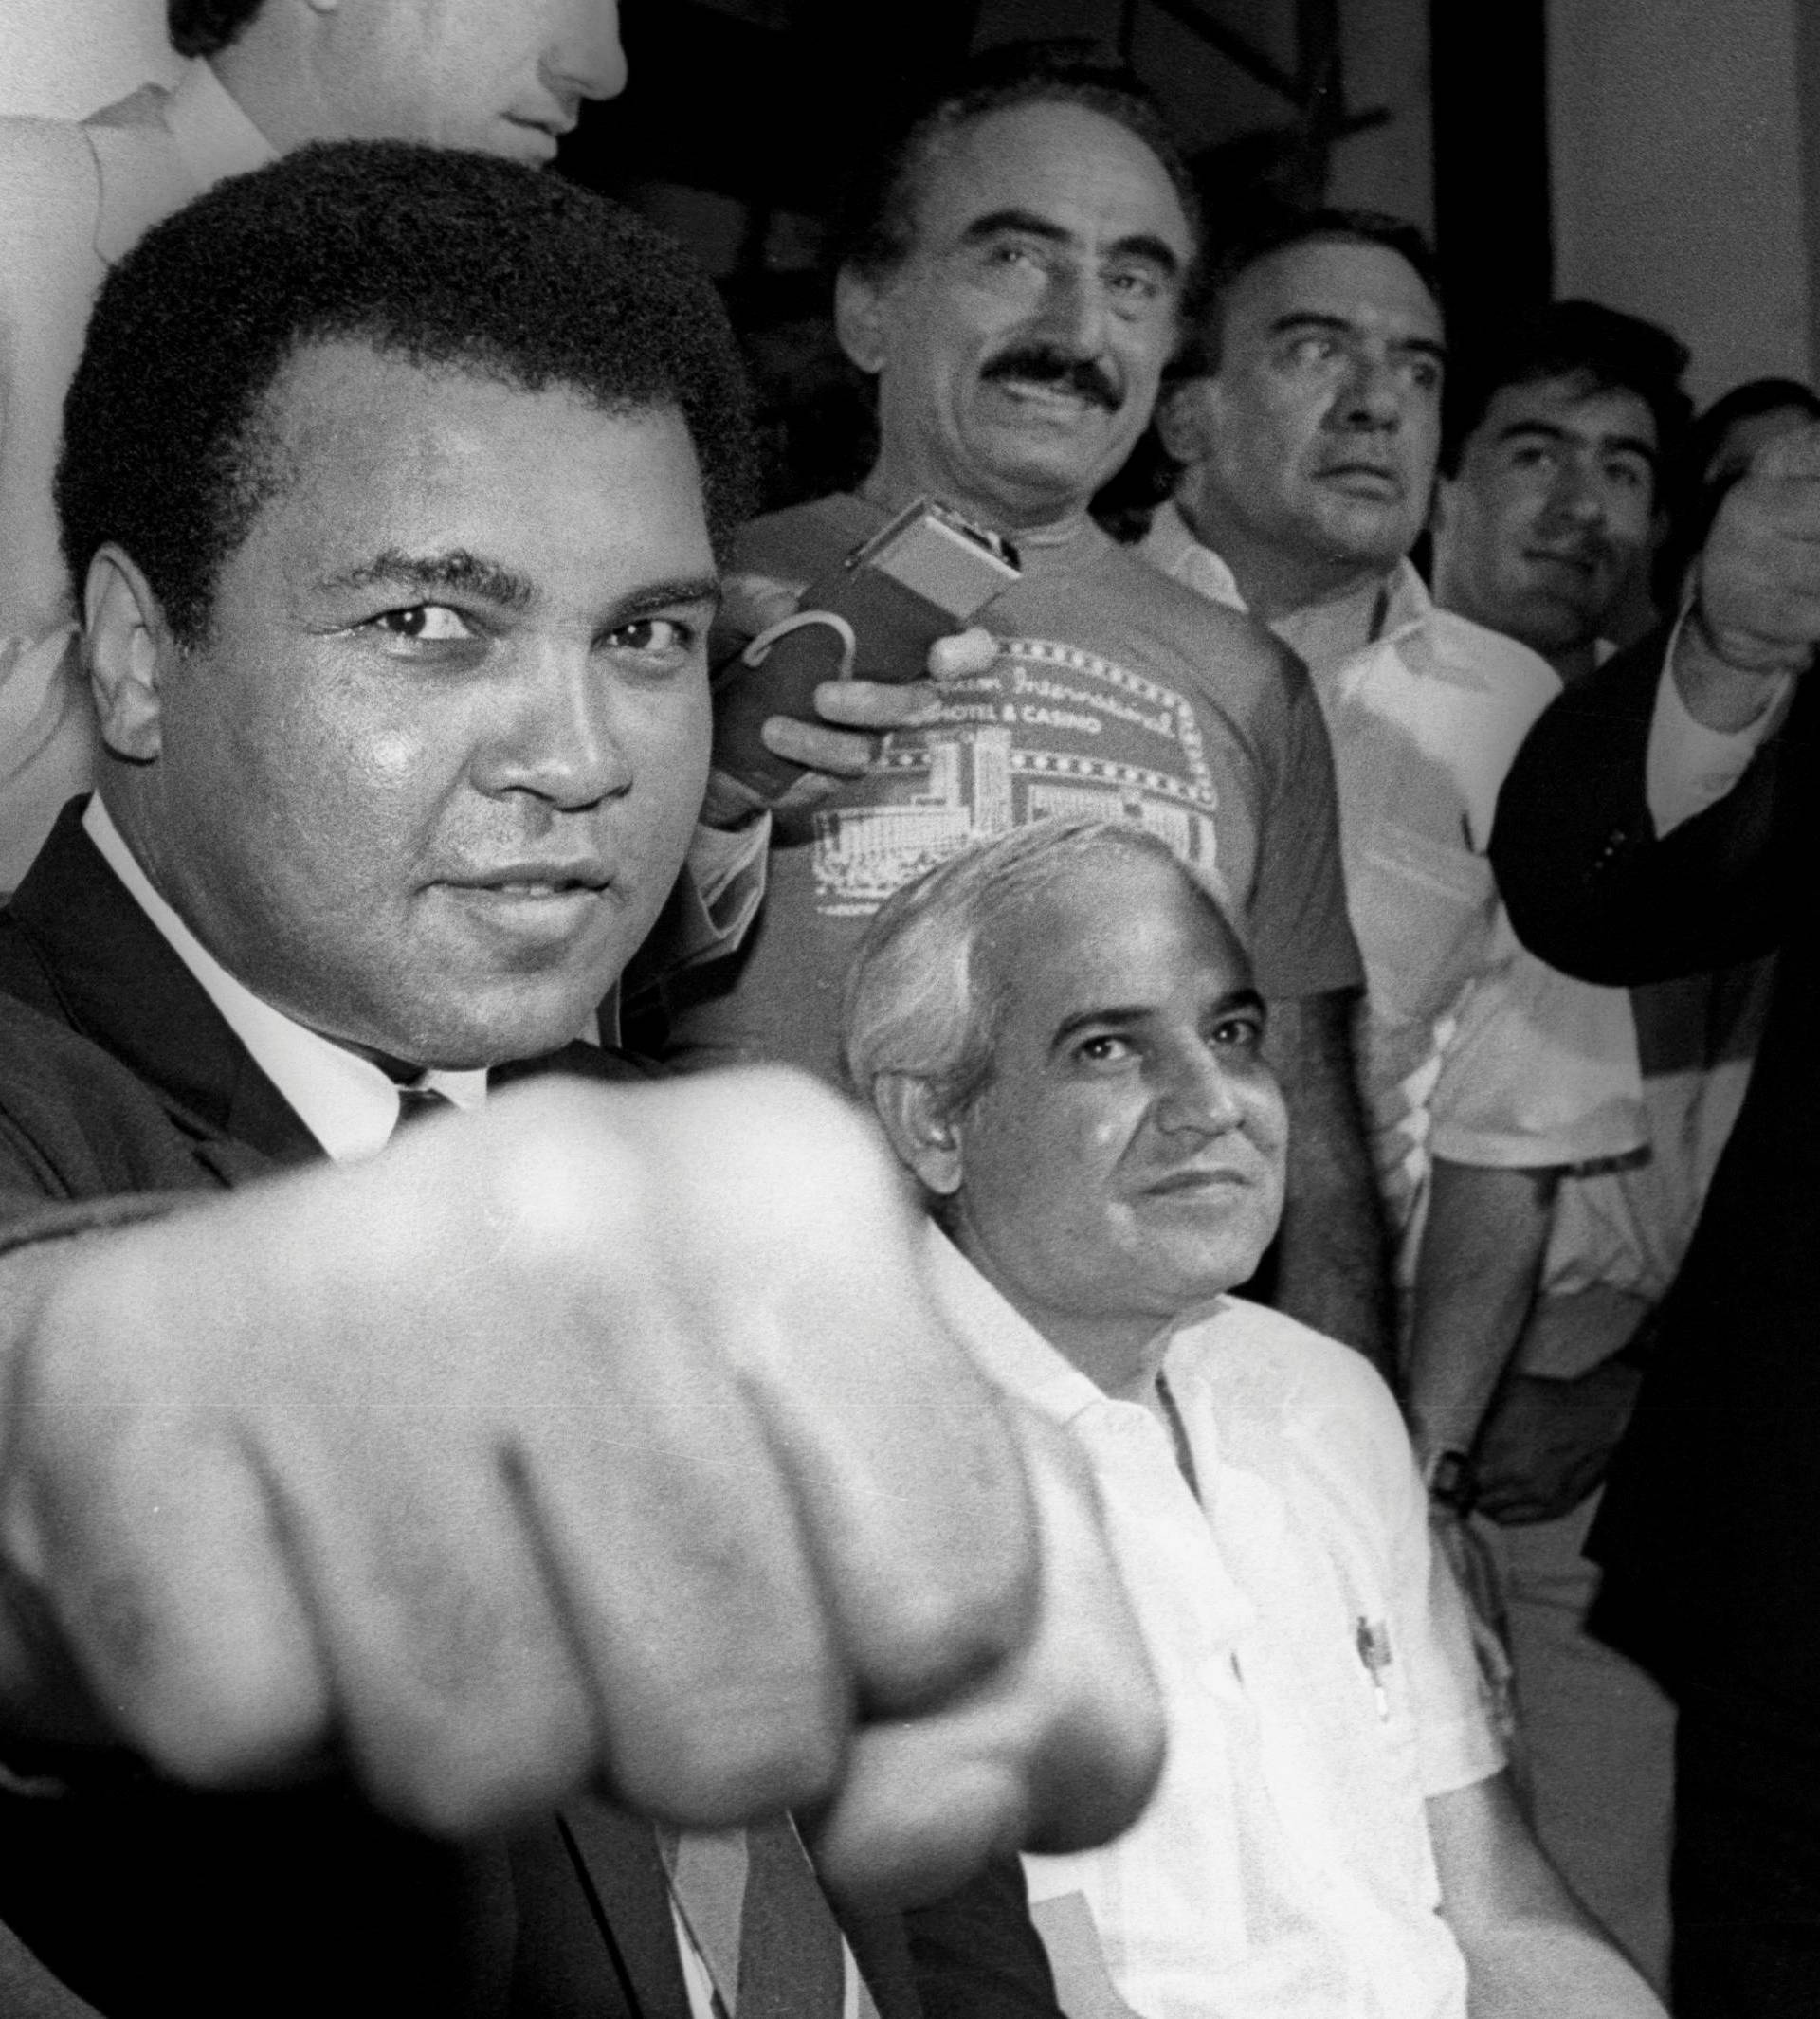 File photo of Muhammad Ali showing his fist to reporters during an impromptu news conference in Mexico City